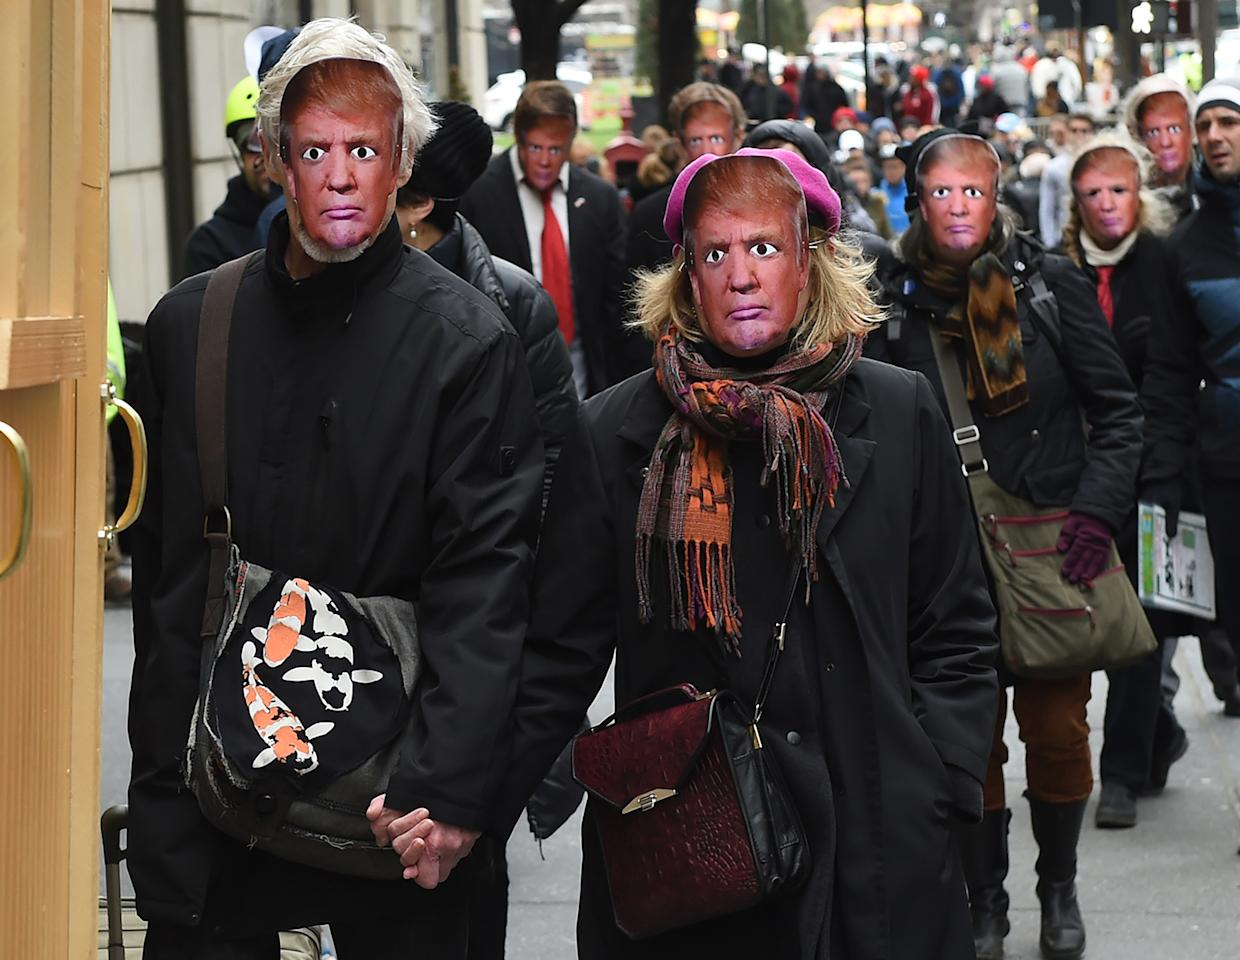 <p>People wearing masks of US President Donald Trump take part in the 32nd Annual April Fools Day Parade in New York on April 1, 2017. (Photo: Timothy A. Clary/AFP/Getty Images) </p>